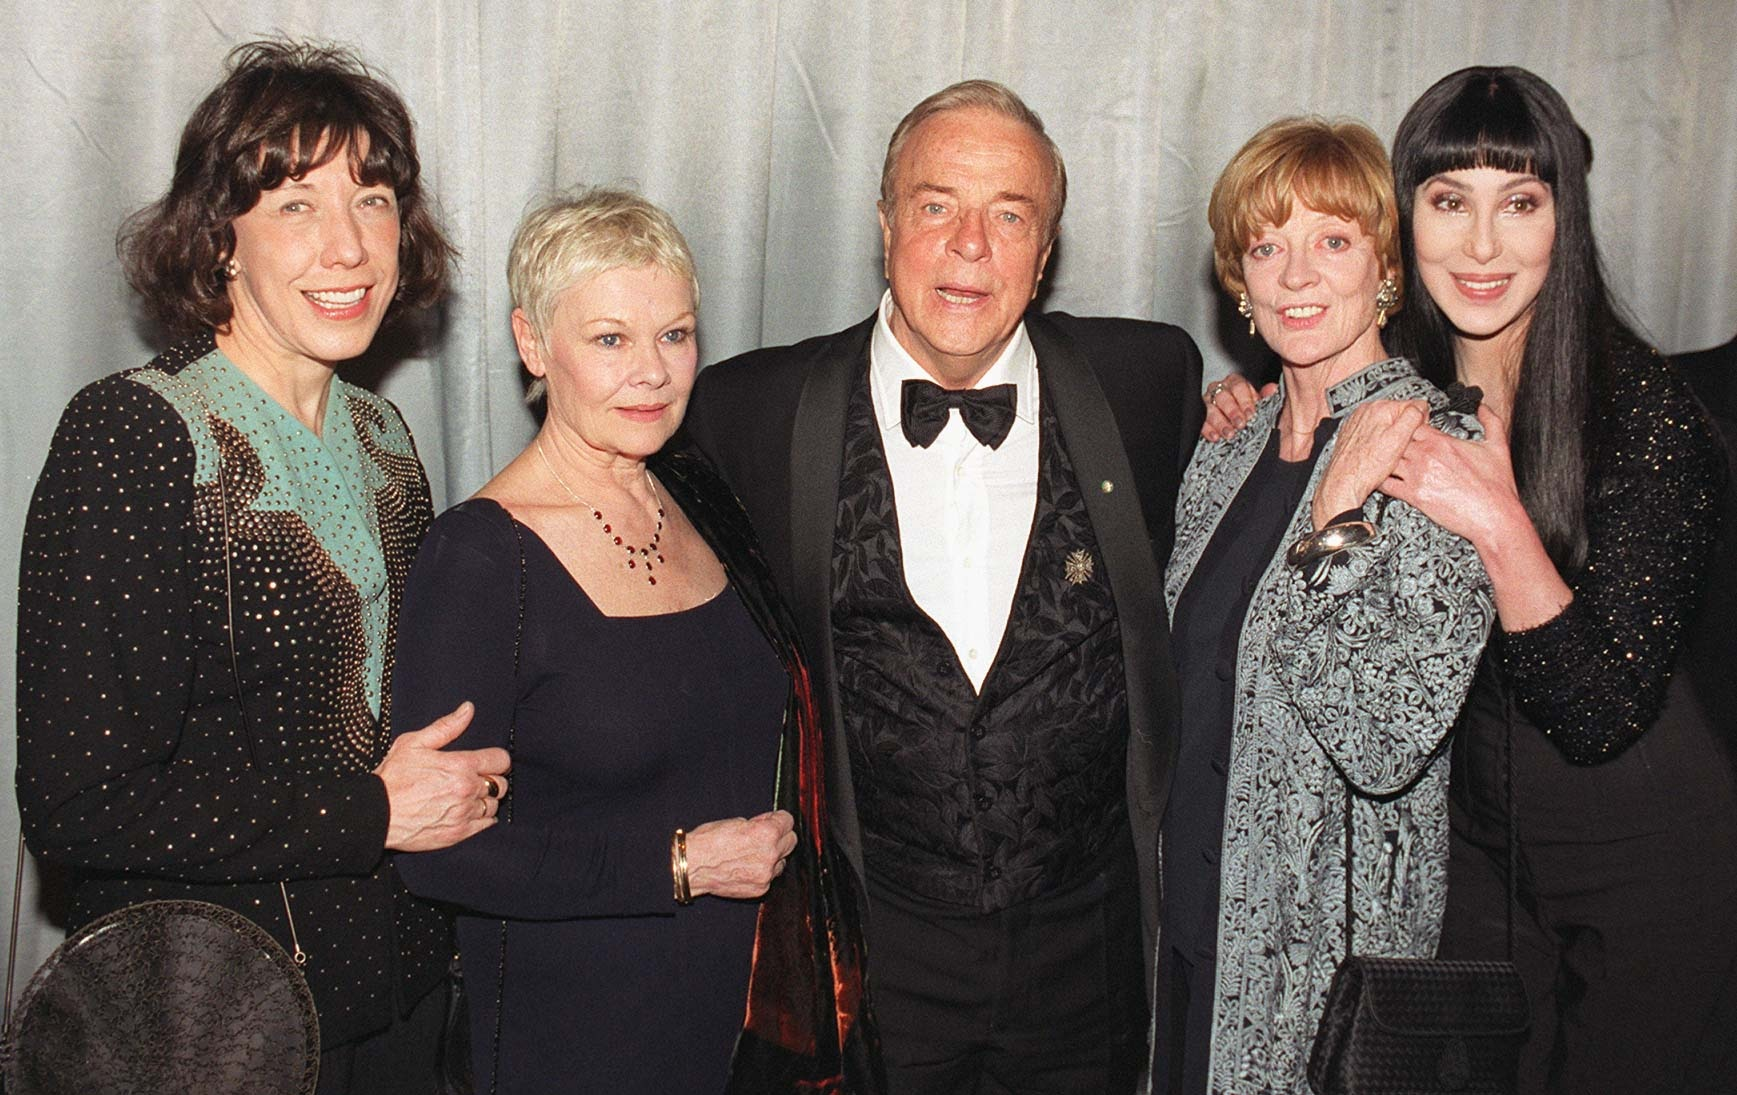 Zeffirelli with (left to right) Lily Tomlin, Dame Judi Dench, Dame Maggie Smith and Cher, the stars of his film, 'Tea With Mussolini'.